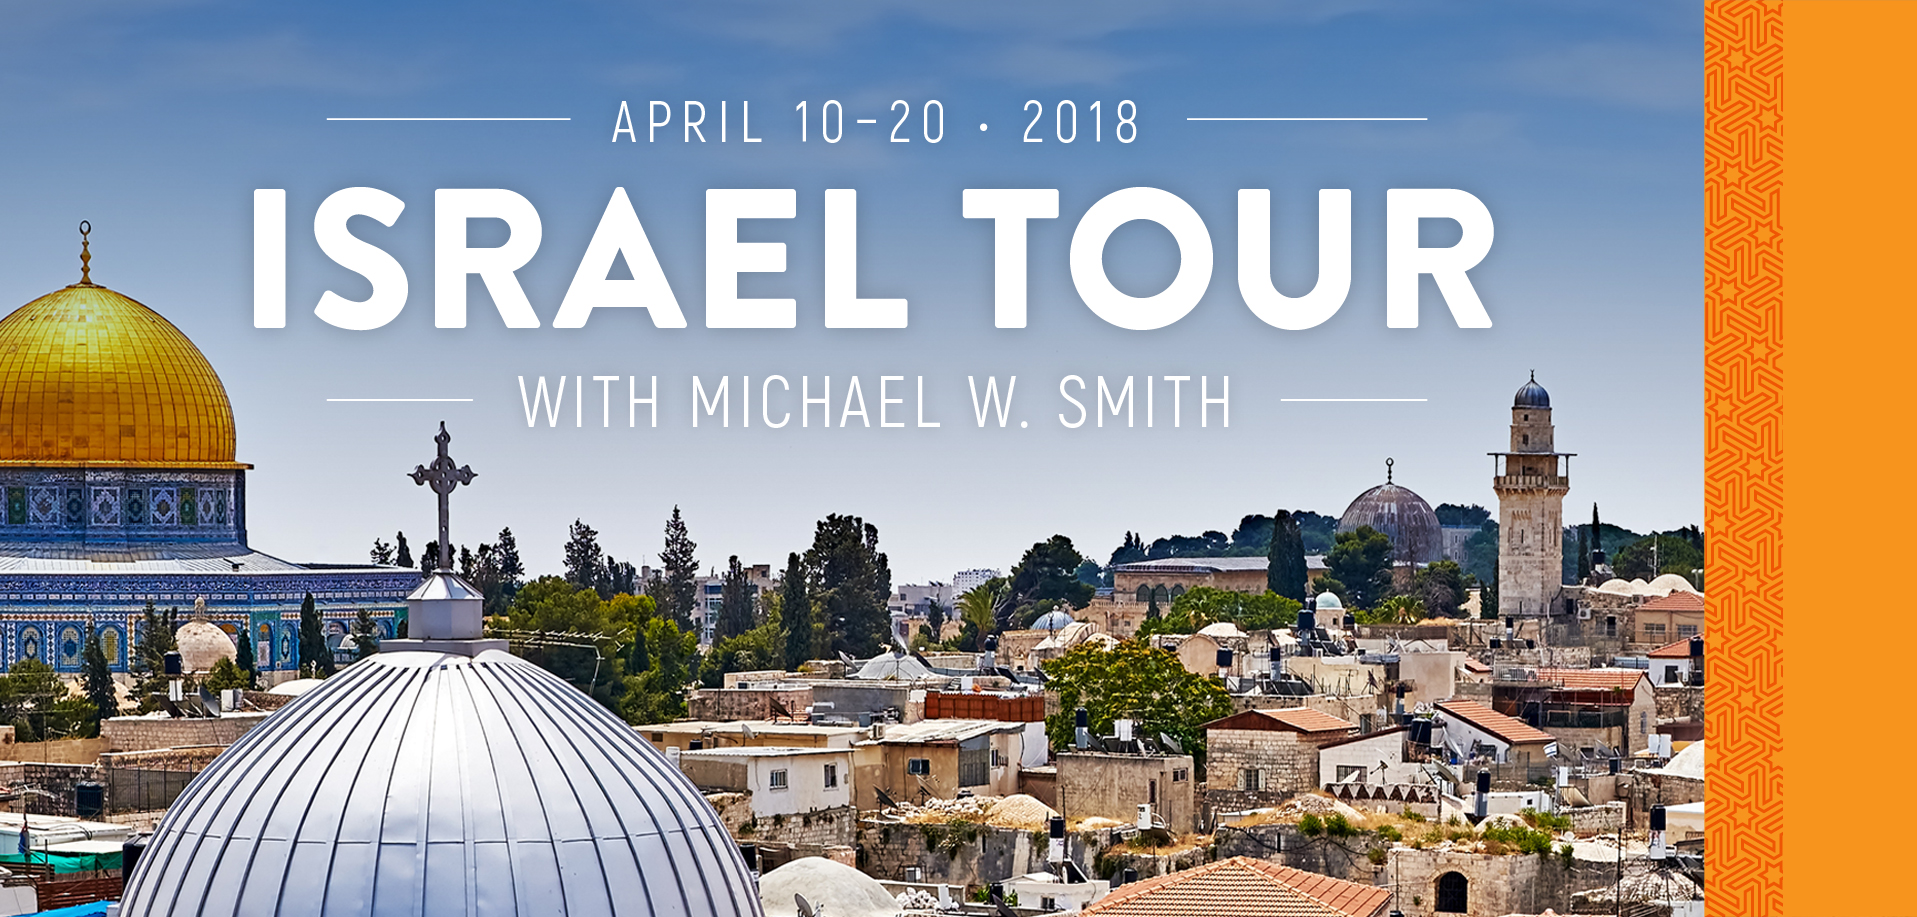 Take a Christian TourWOX with Michael W. Smith - Christian Tour to Israel - April 10-20, 2018